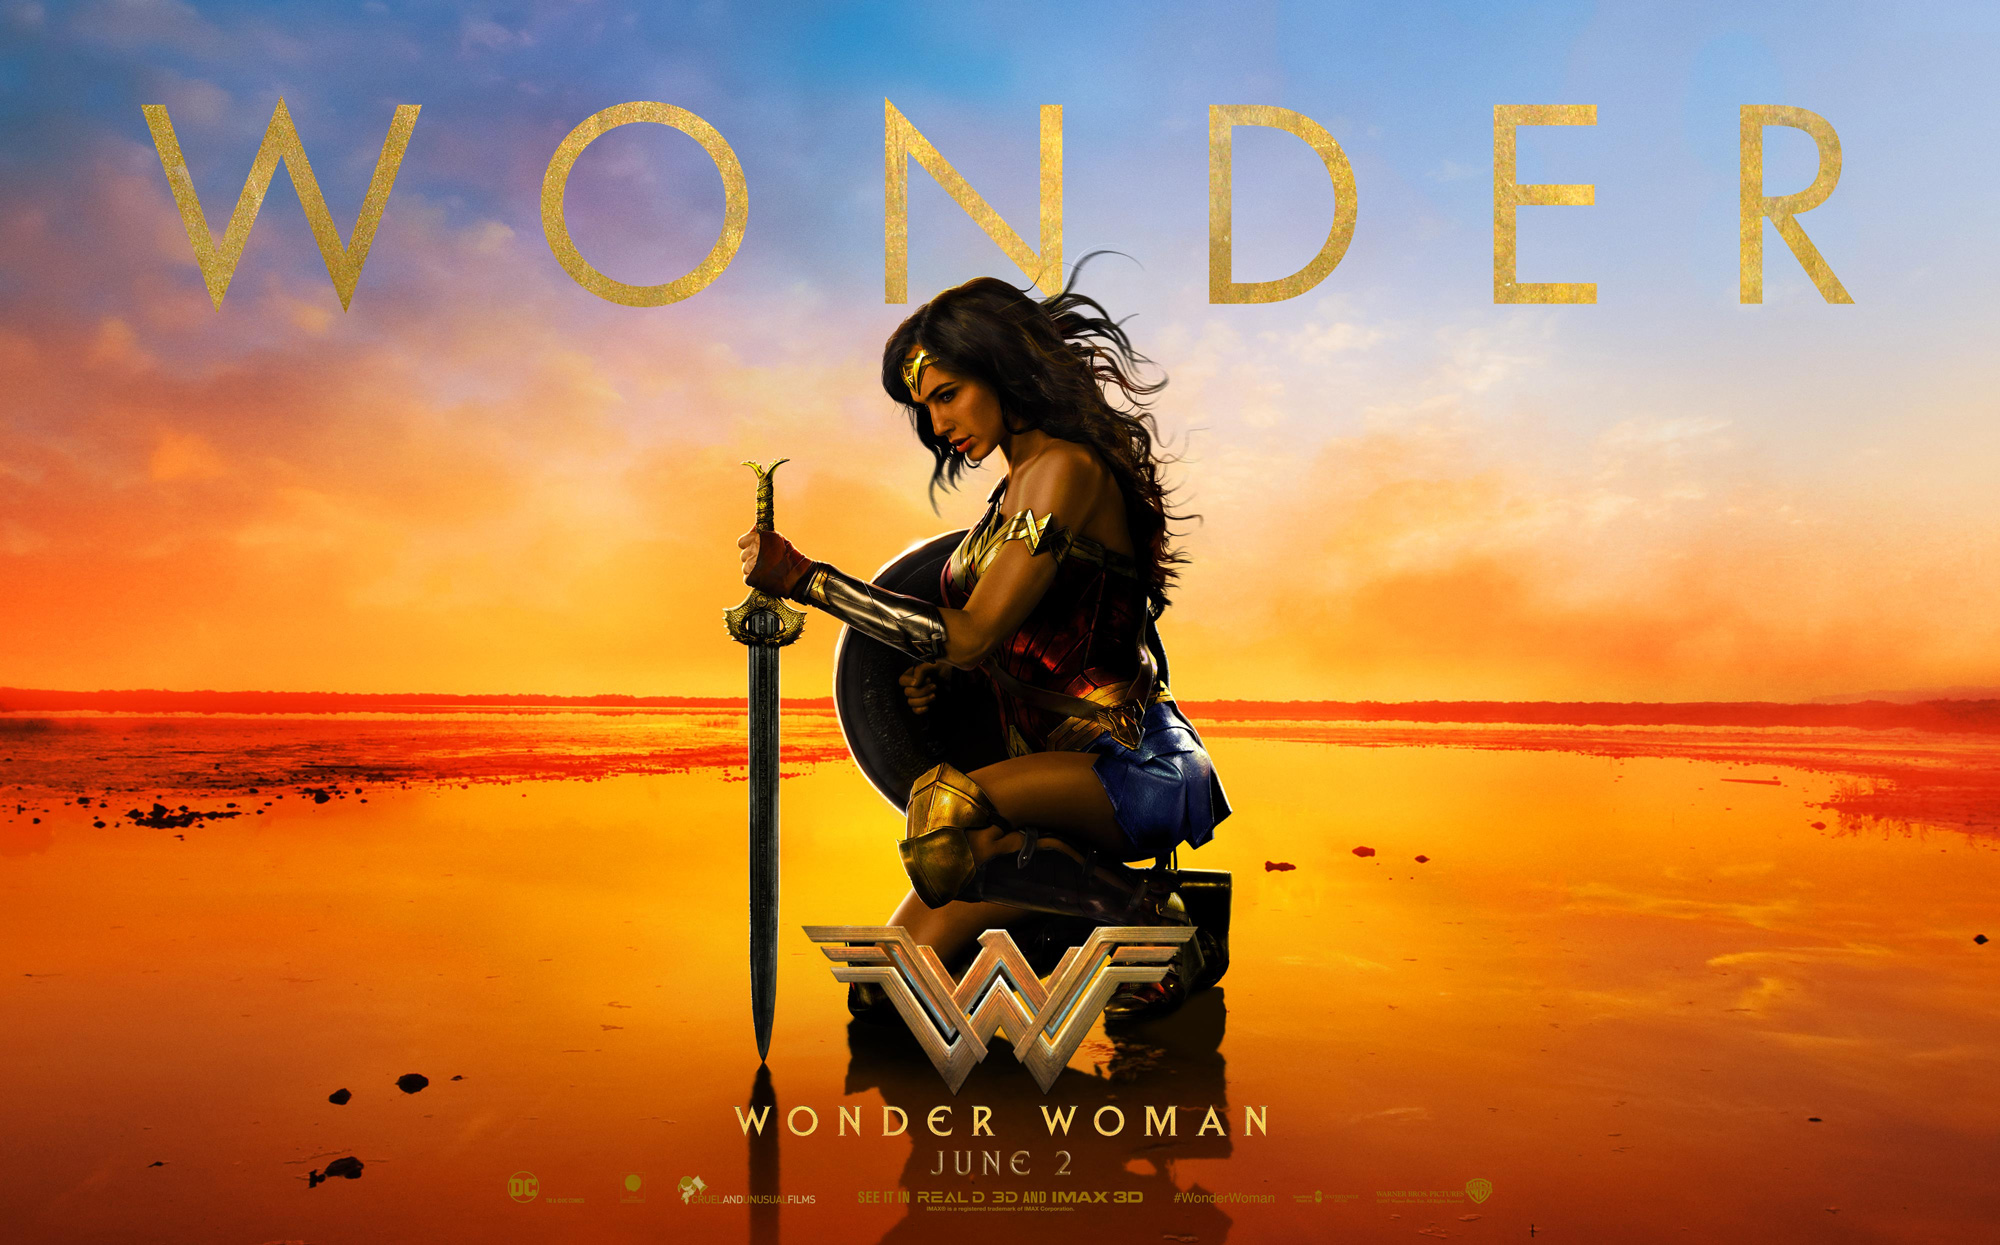 Wonder woman movie 1977-5421